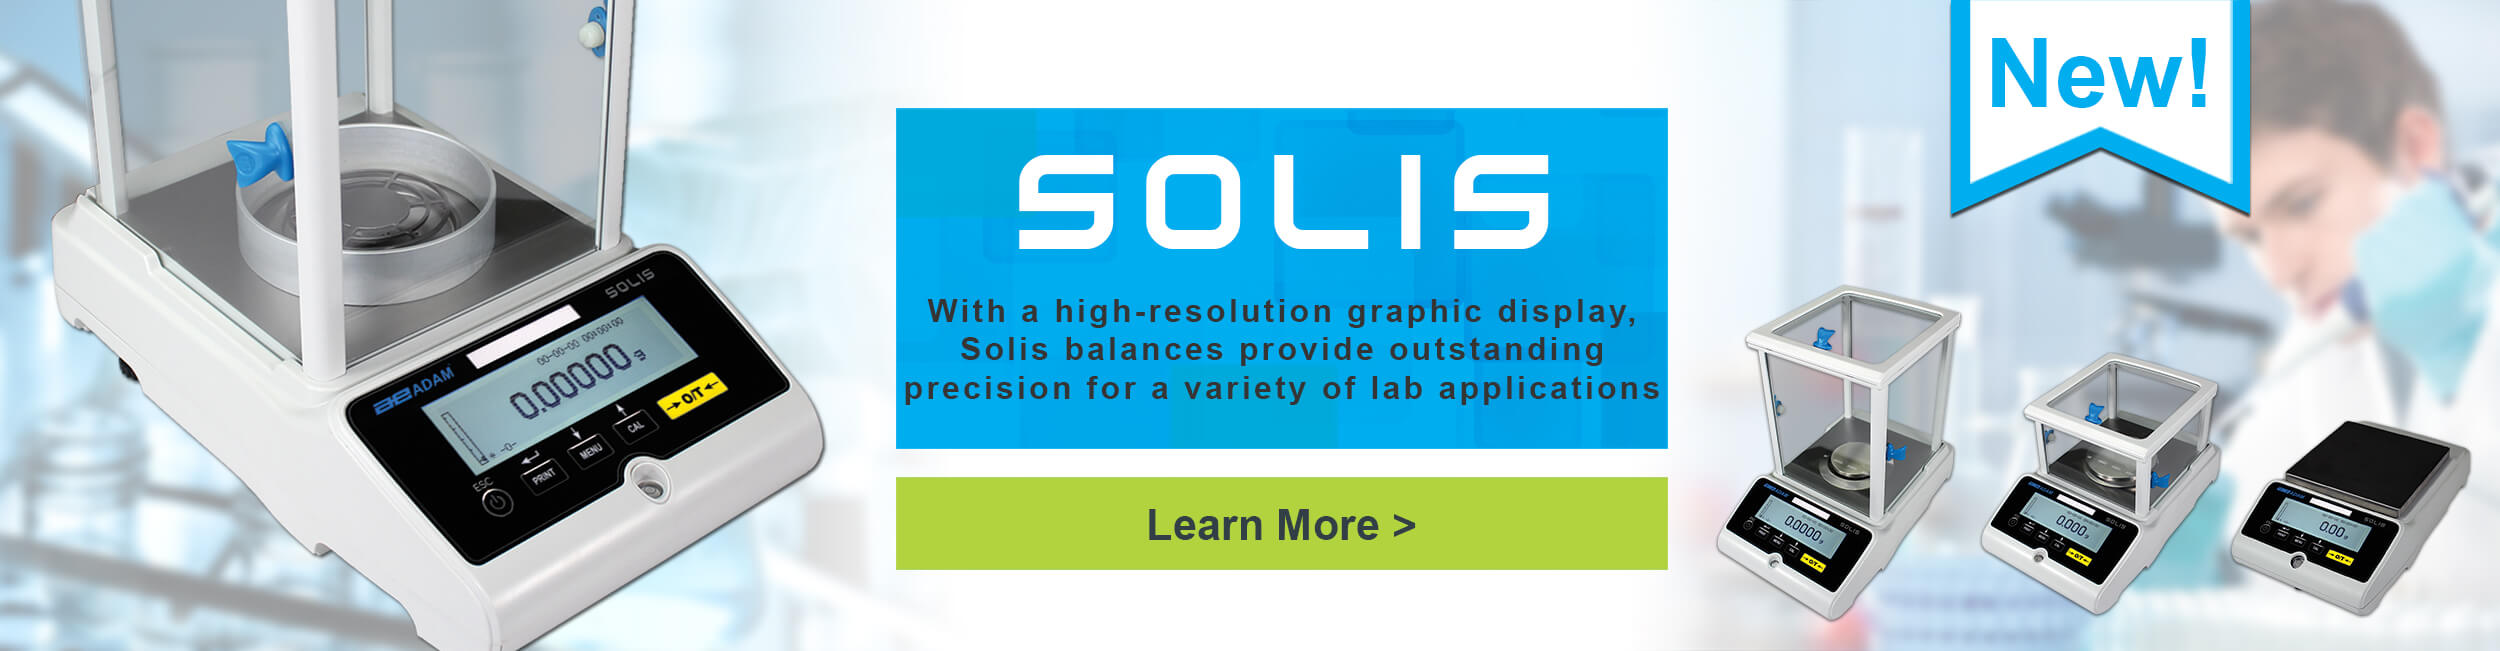 Solis - With a high-resolution graphic display, Solis balances provide  outstanding precision for